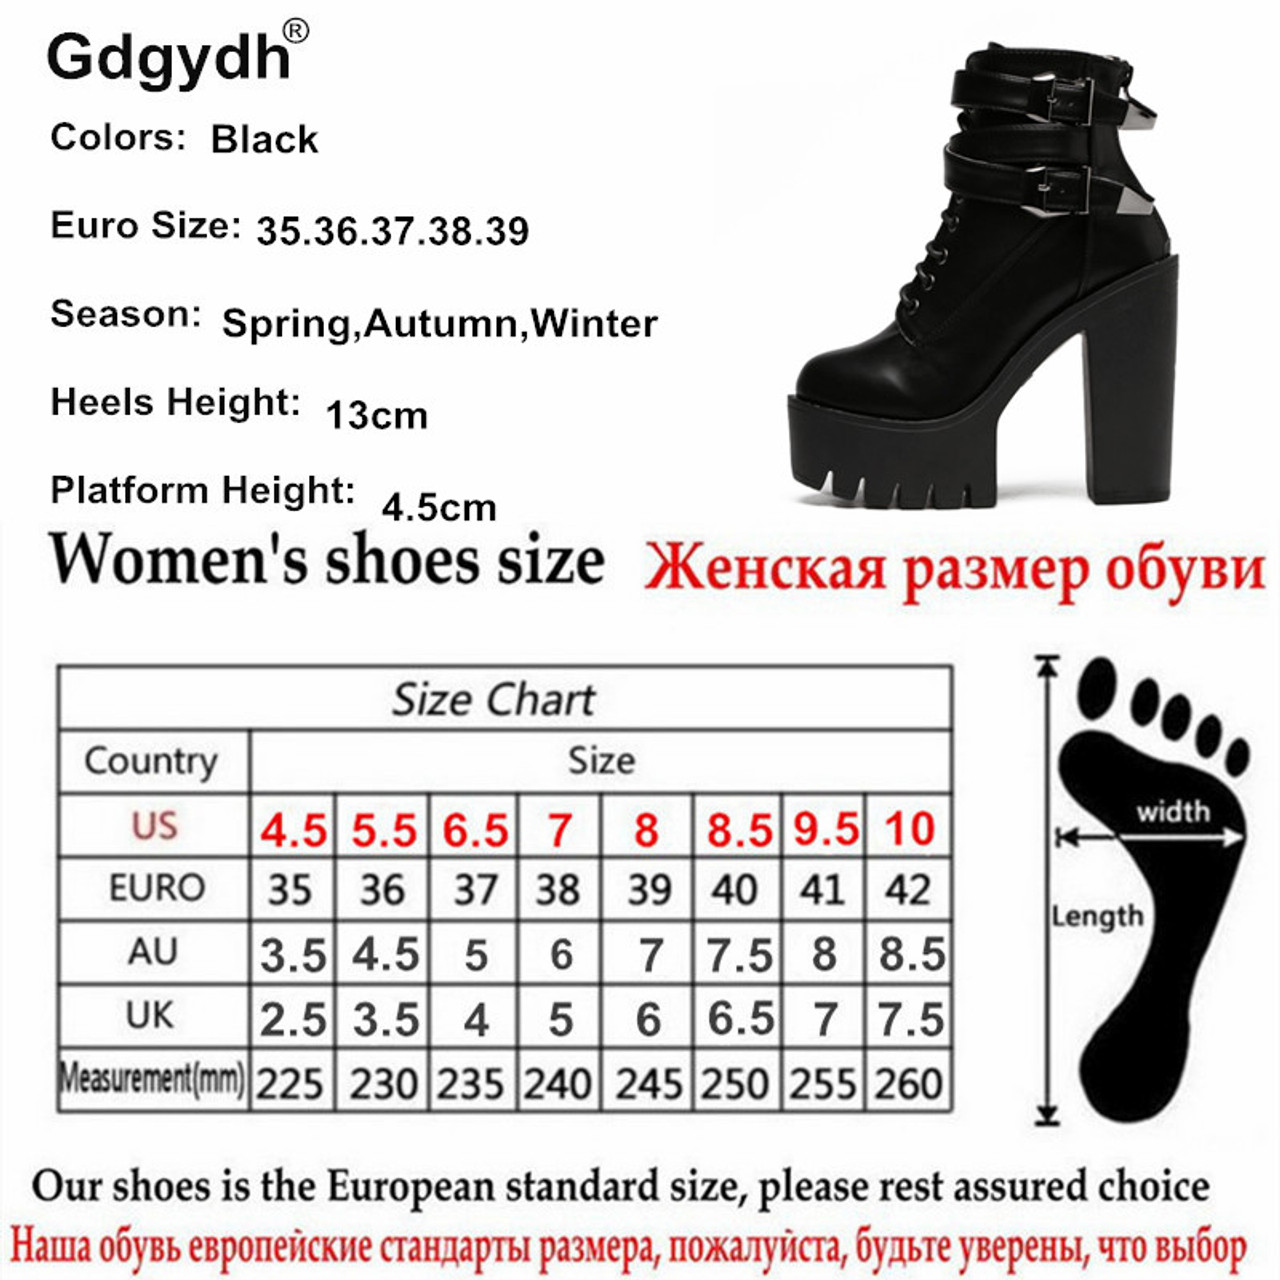 165a46d084f02 ... Gdgydh 2017 Spring Fashion Women Boots High Heels Platform Buckle Lace  Up Leather Short Booties Black ...